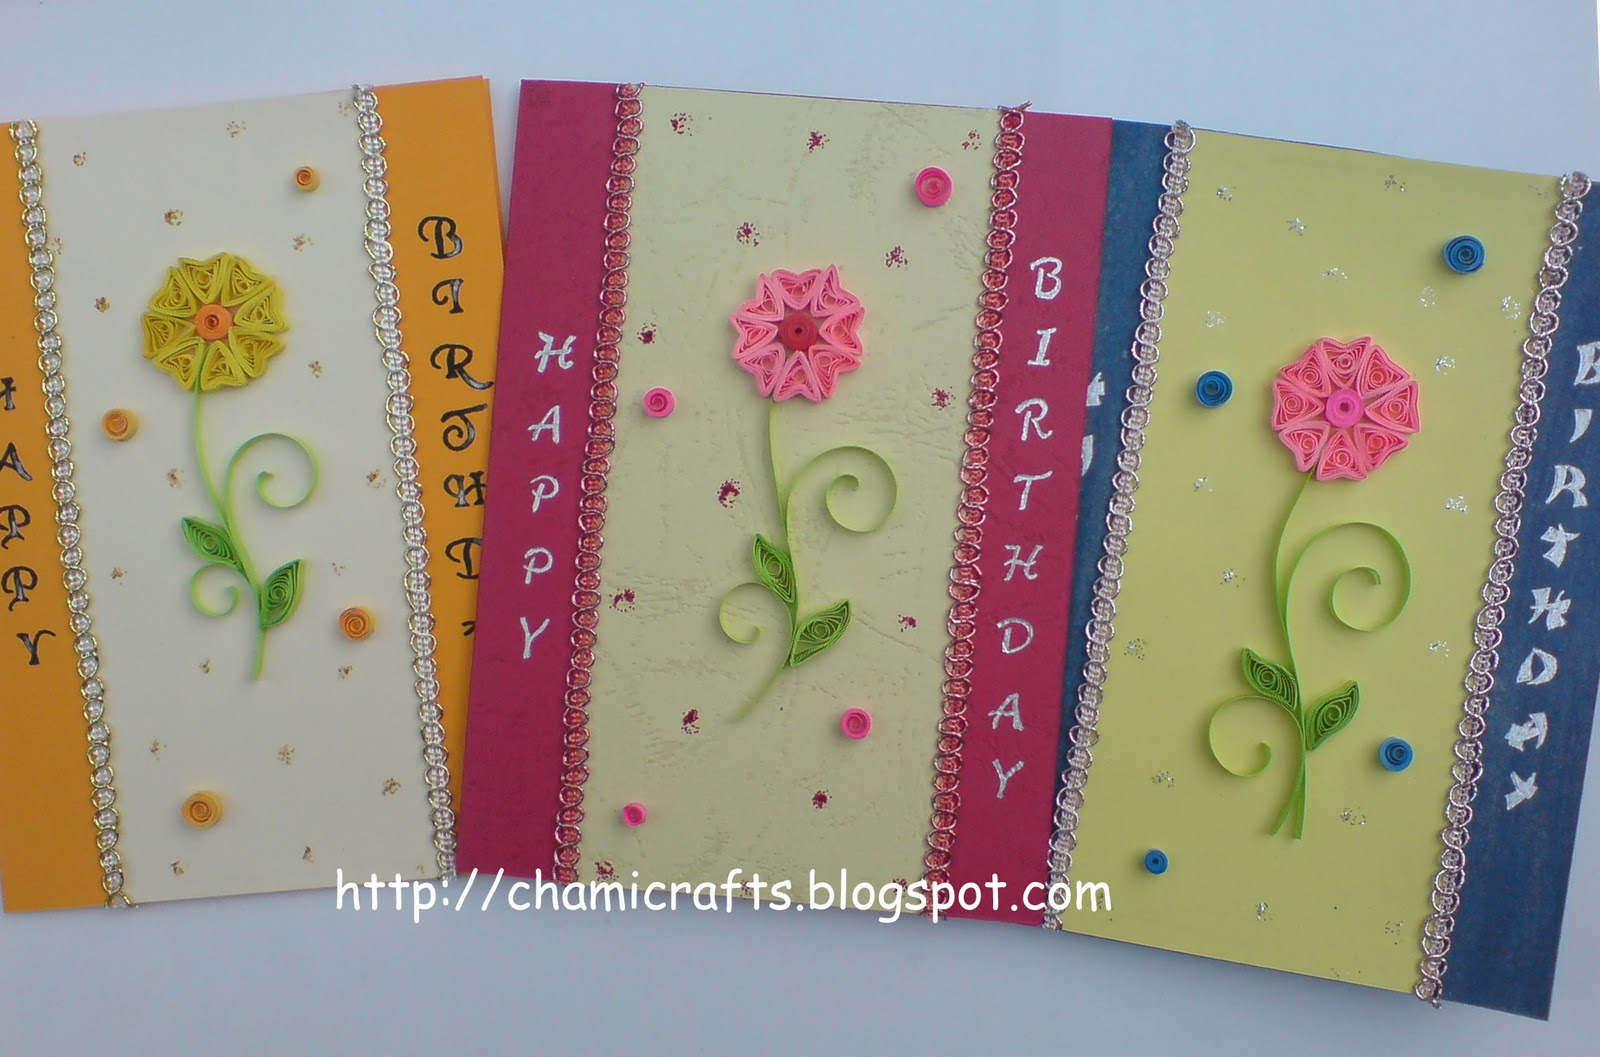 Chami Crafts  Handmade Greeting Cards: February 2011